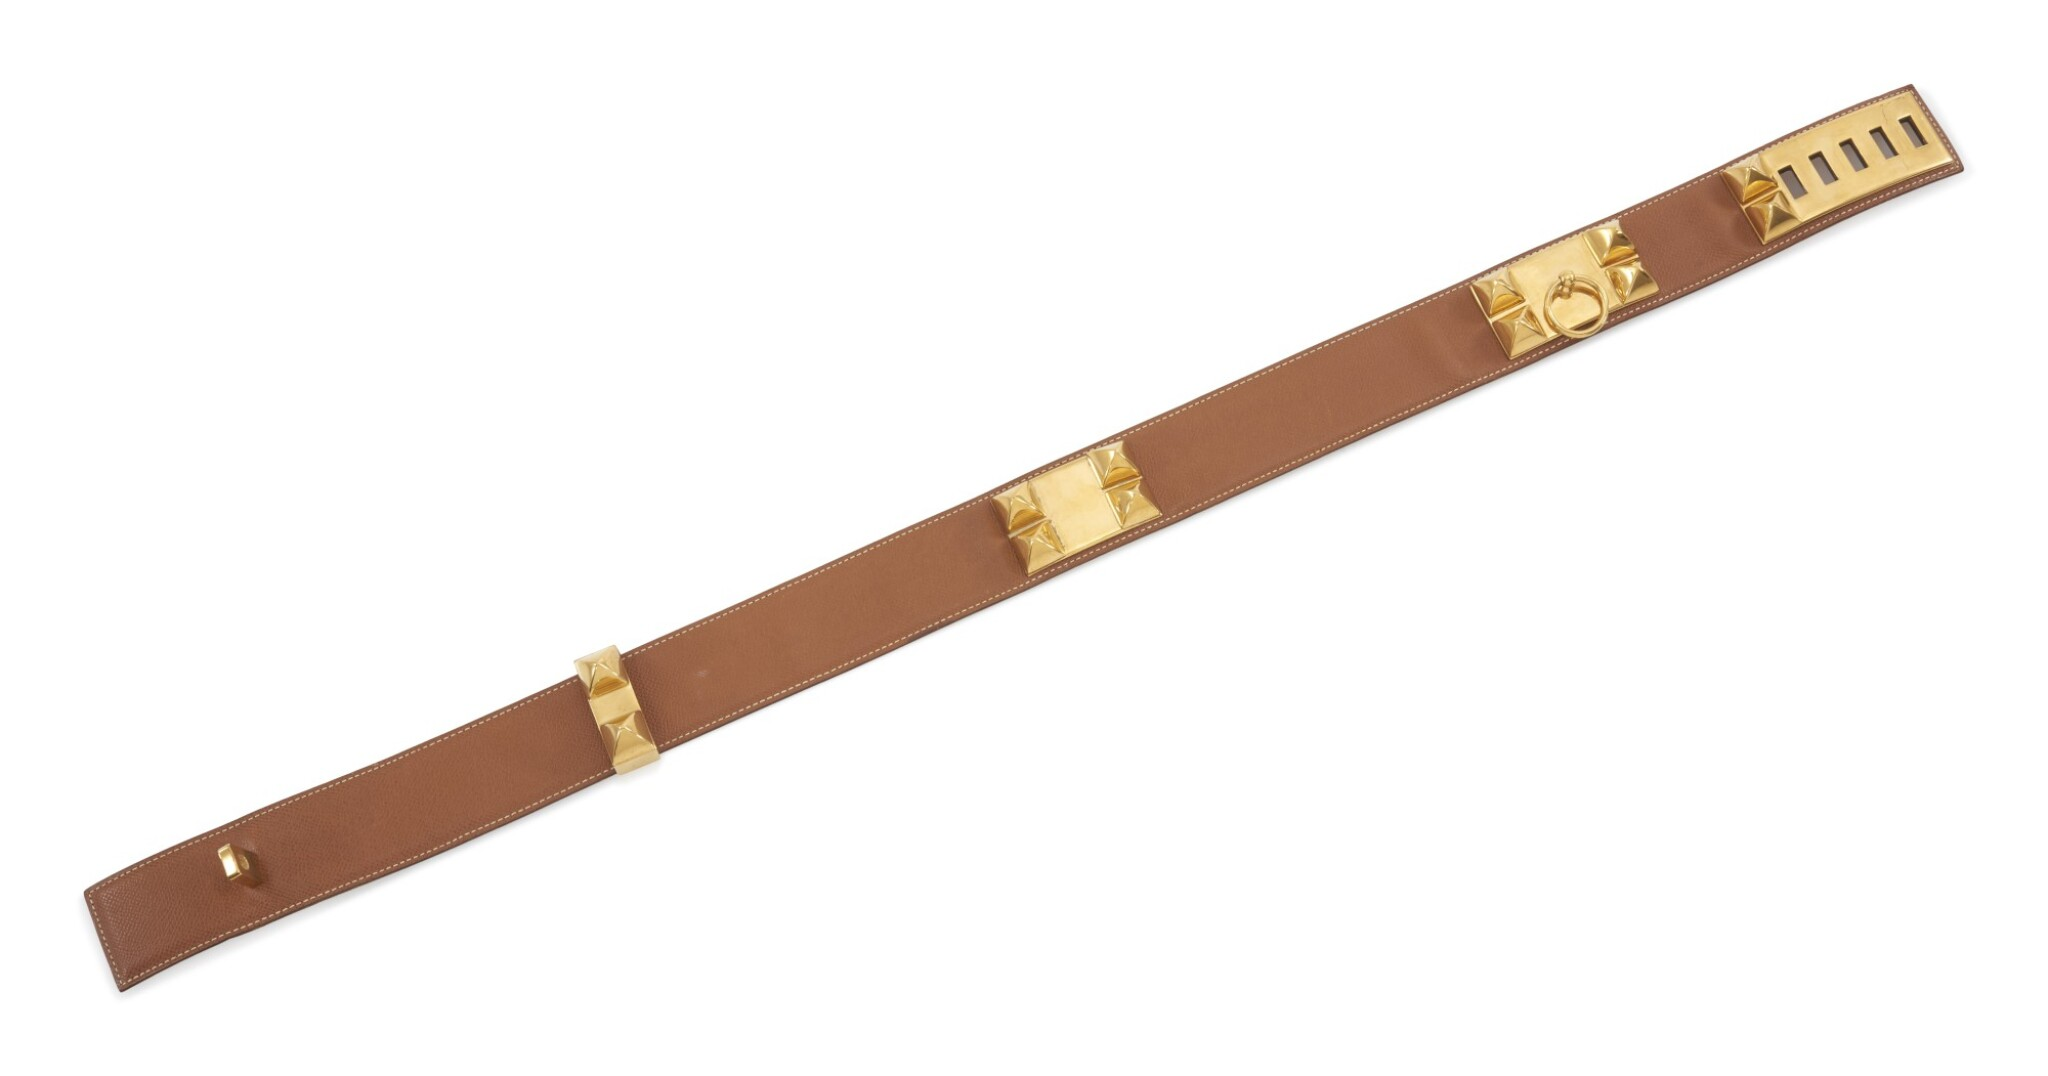 Leather and gold plated hardware belt, Collier de chien 75, Hermès, 1995